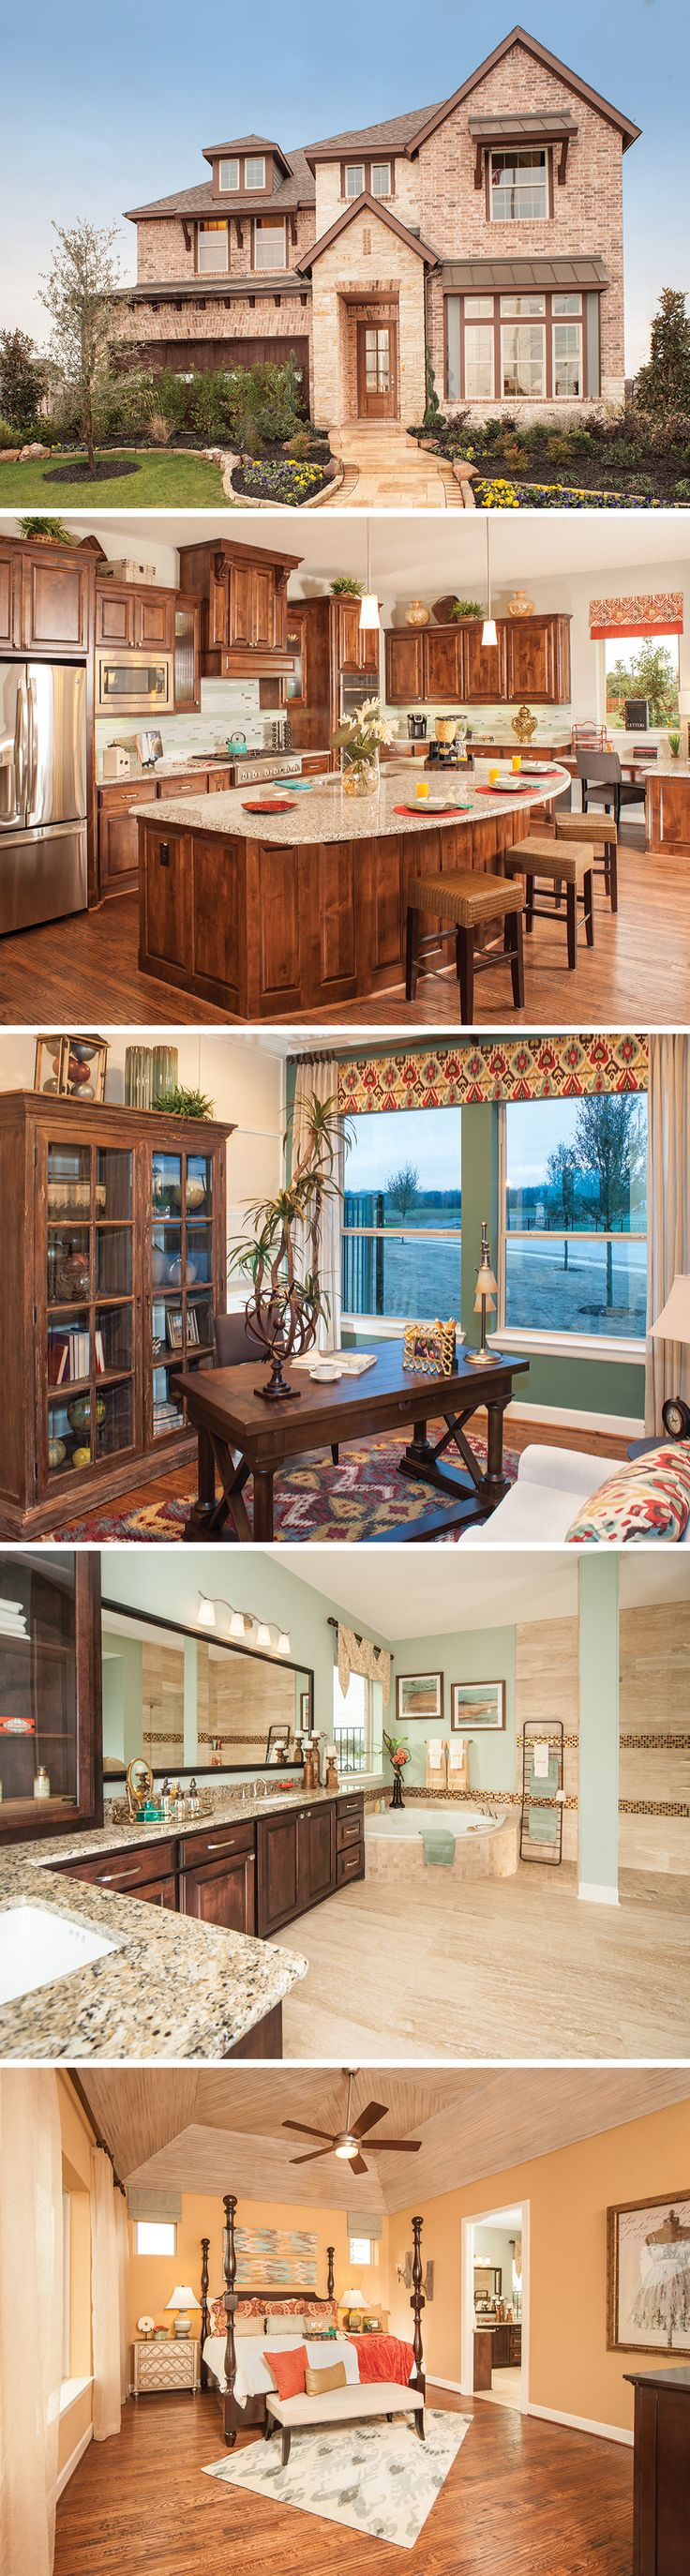 The Buckfield in Dallas, Texas is a beautiful 5 - 6 bedroom home that's perfect for large families!